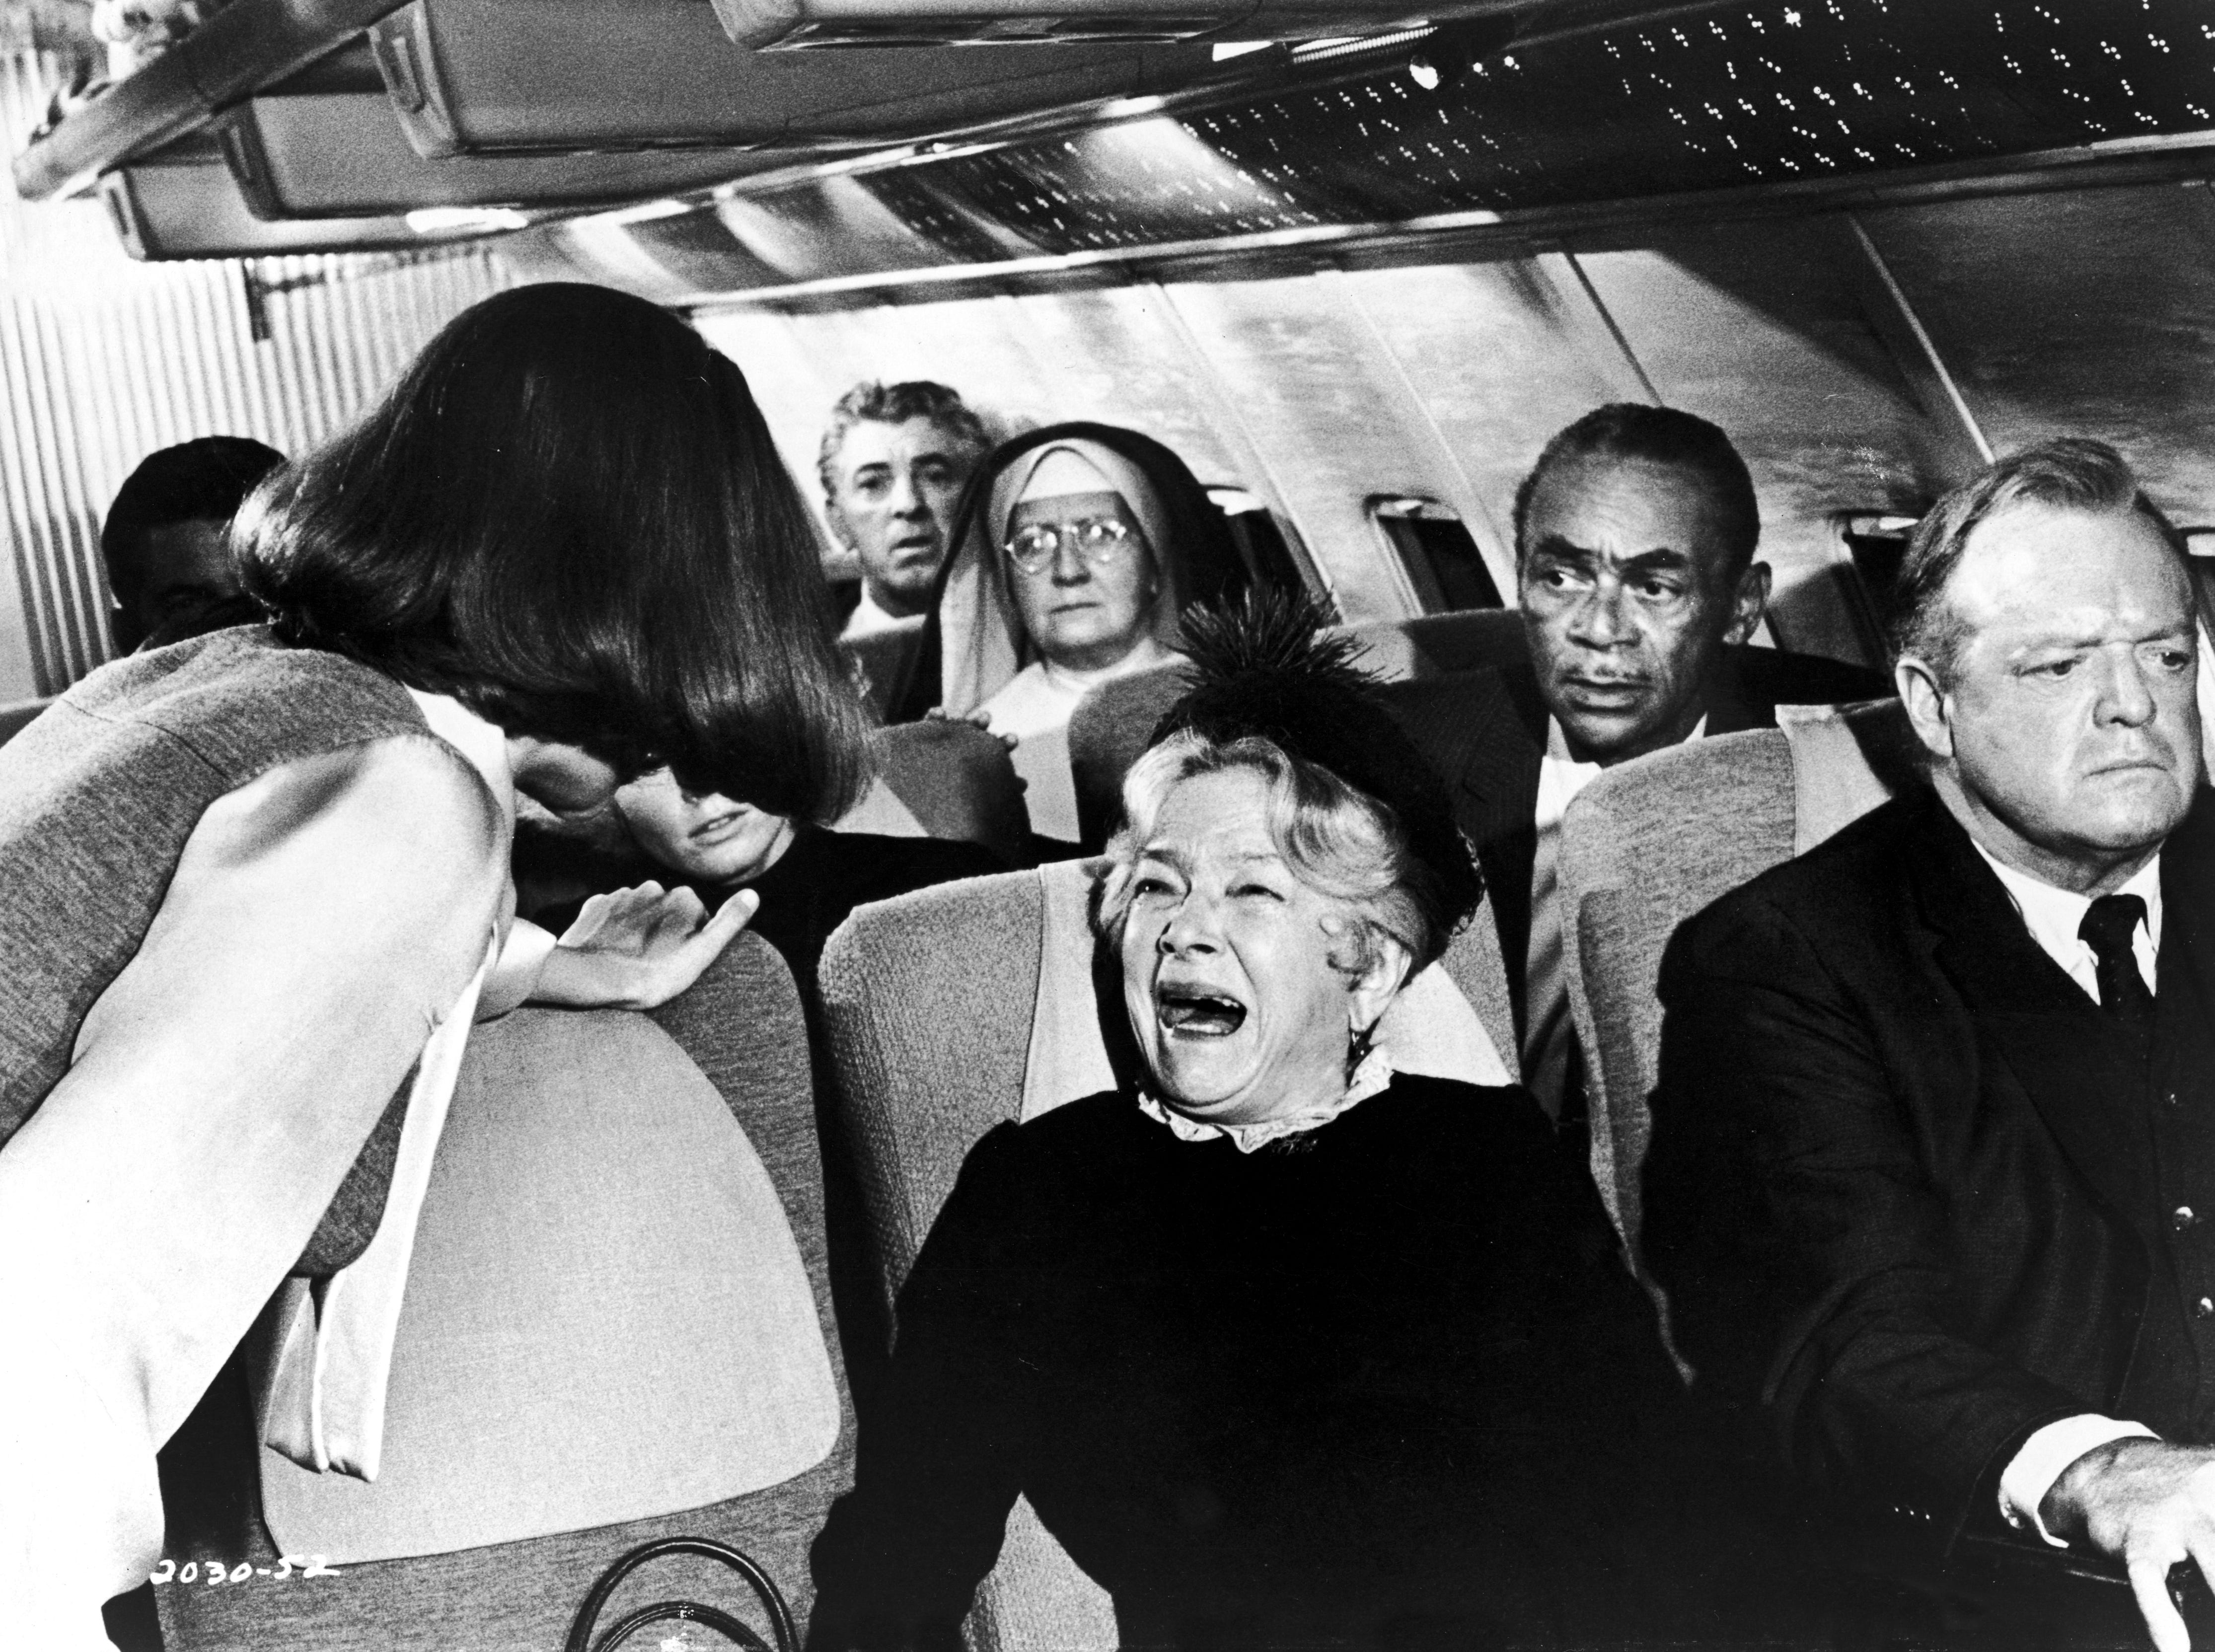 ONE TIME USE 2/21/2019 American actor Helen Hayes (1900 - 1993) cries hysterically as a flight attendant attempts to calm her and American actor Van Heflin (1910 - 1971) looks away in a still from the film, 'Airport,'  directed by George Seaton.